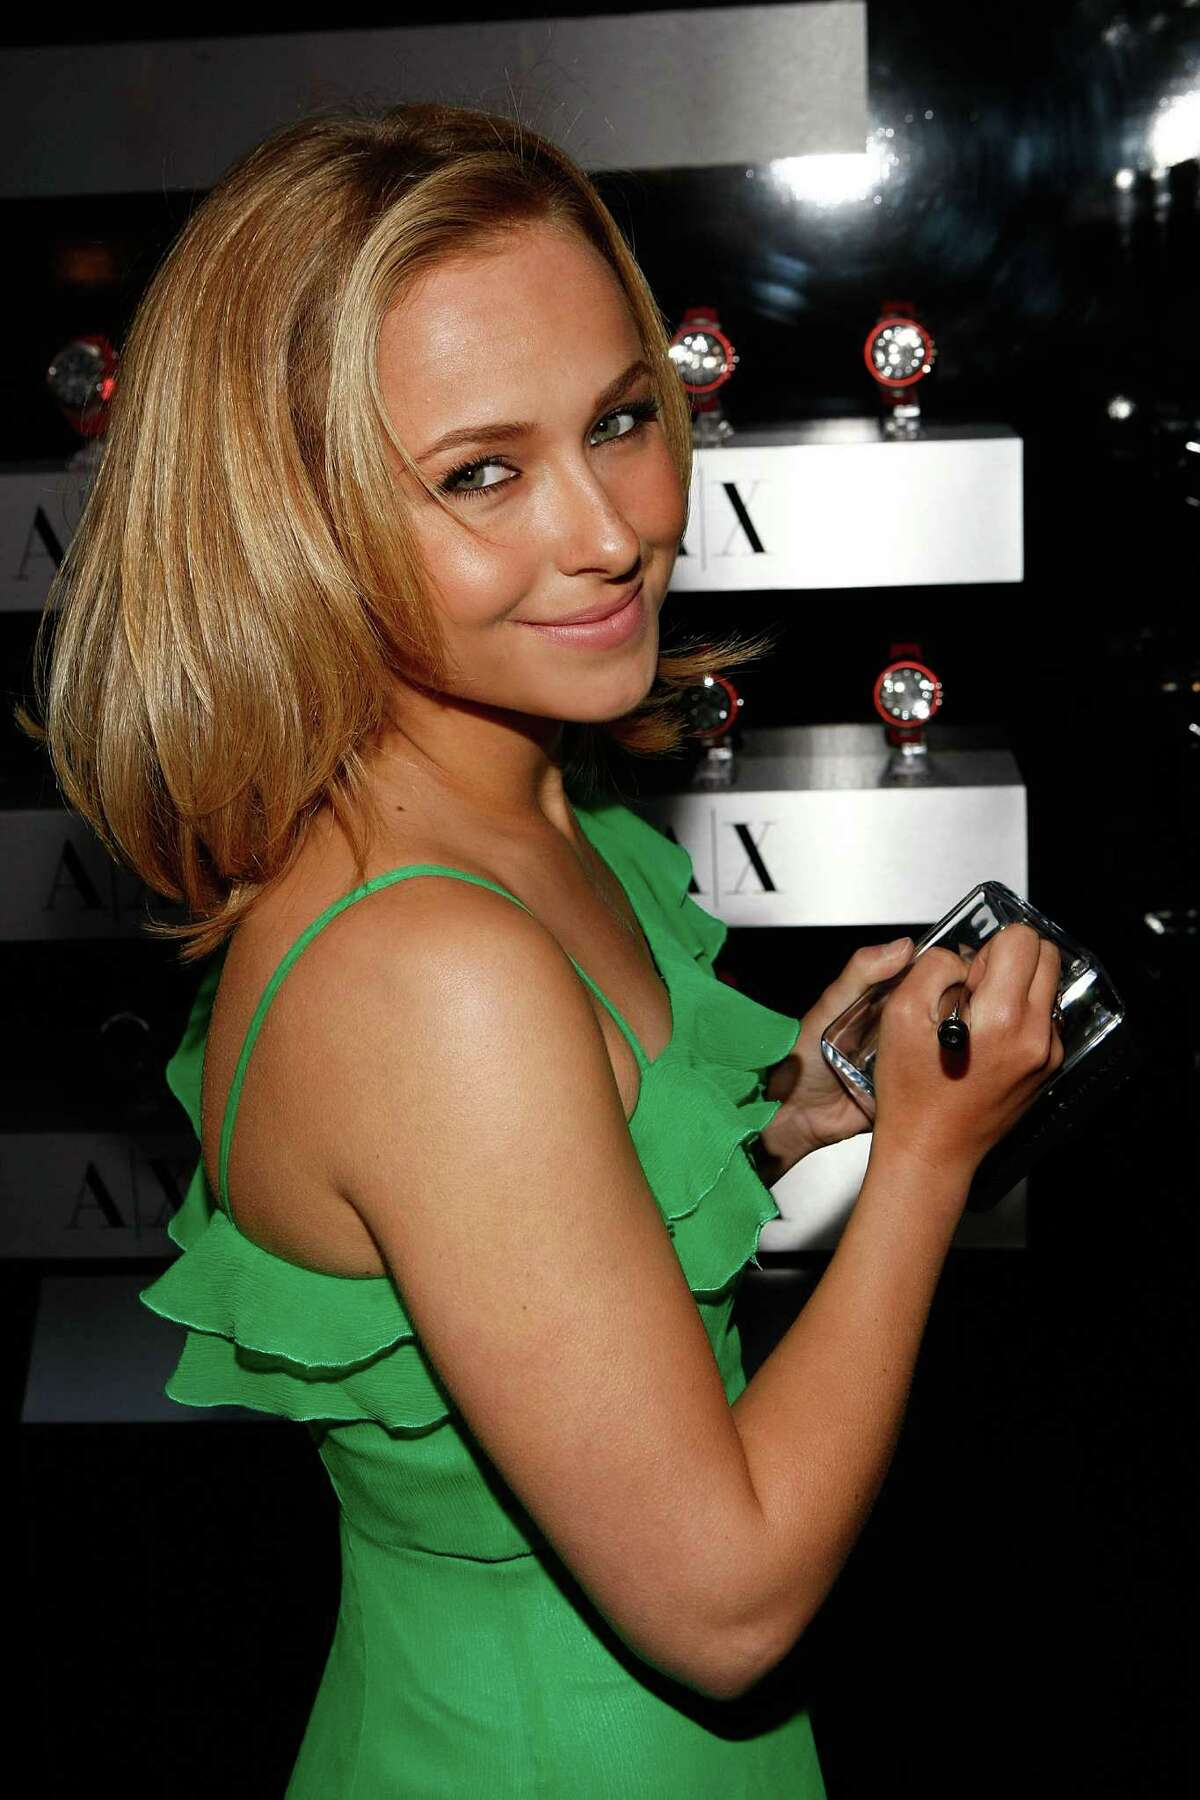 ... at the launch of A/X Watches iin 2009 in Los Angeles, Calif.